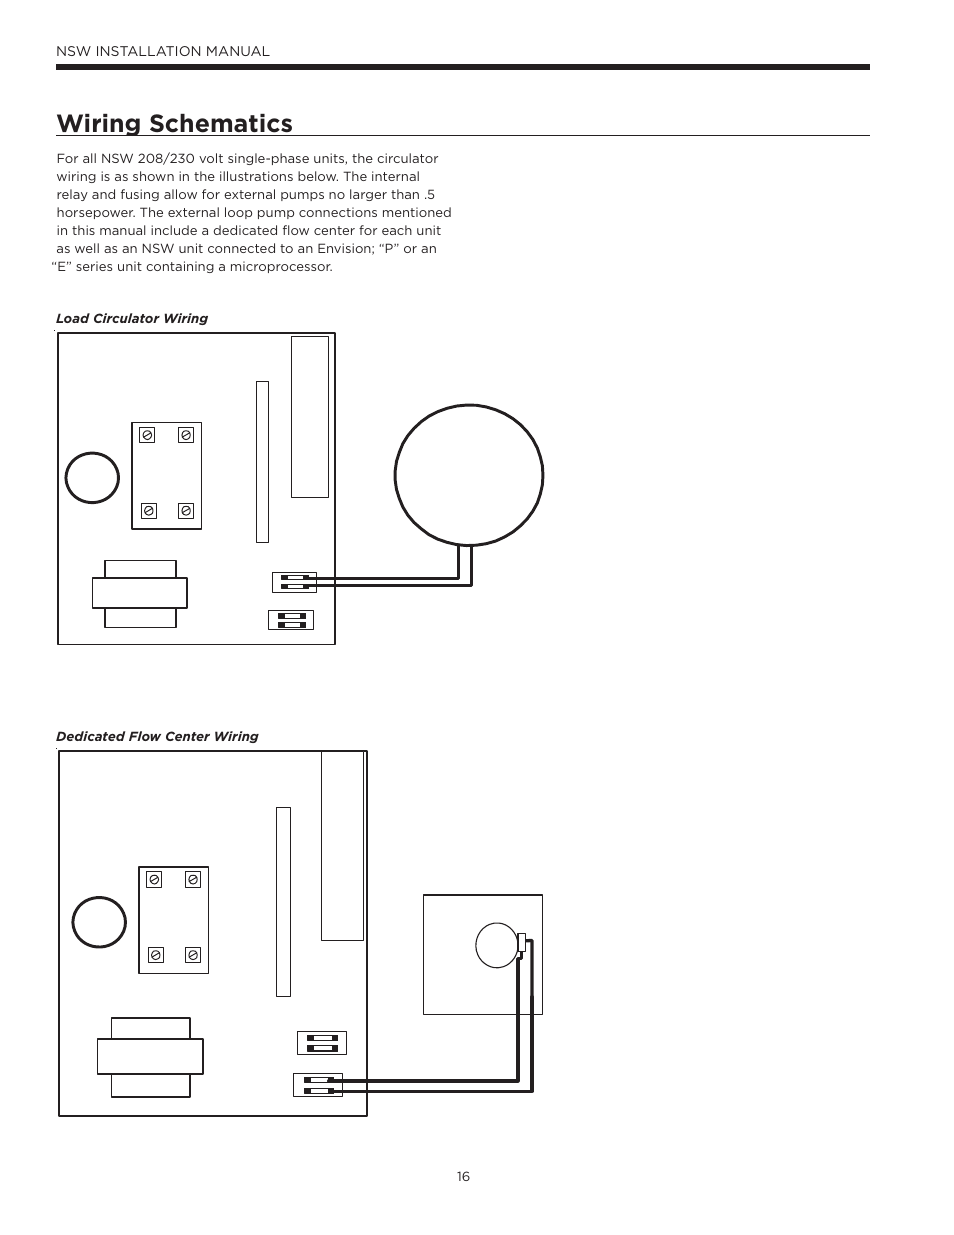 Waterfurnace Wiring Diagram And Schematics Diagrams Water Furnace Thermostat Data Source Control Box Load Circulator Pump Envision Hydronic Nsw User